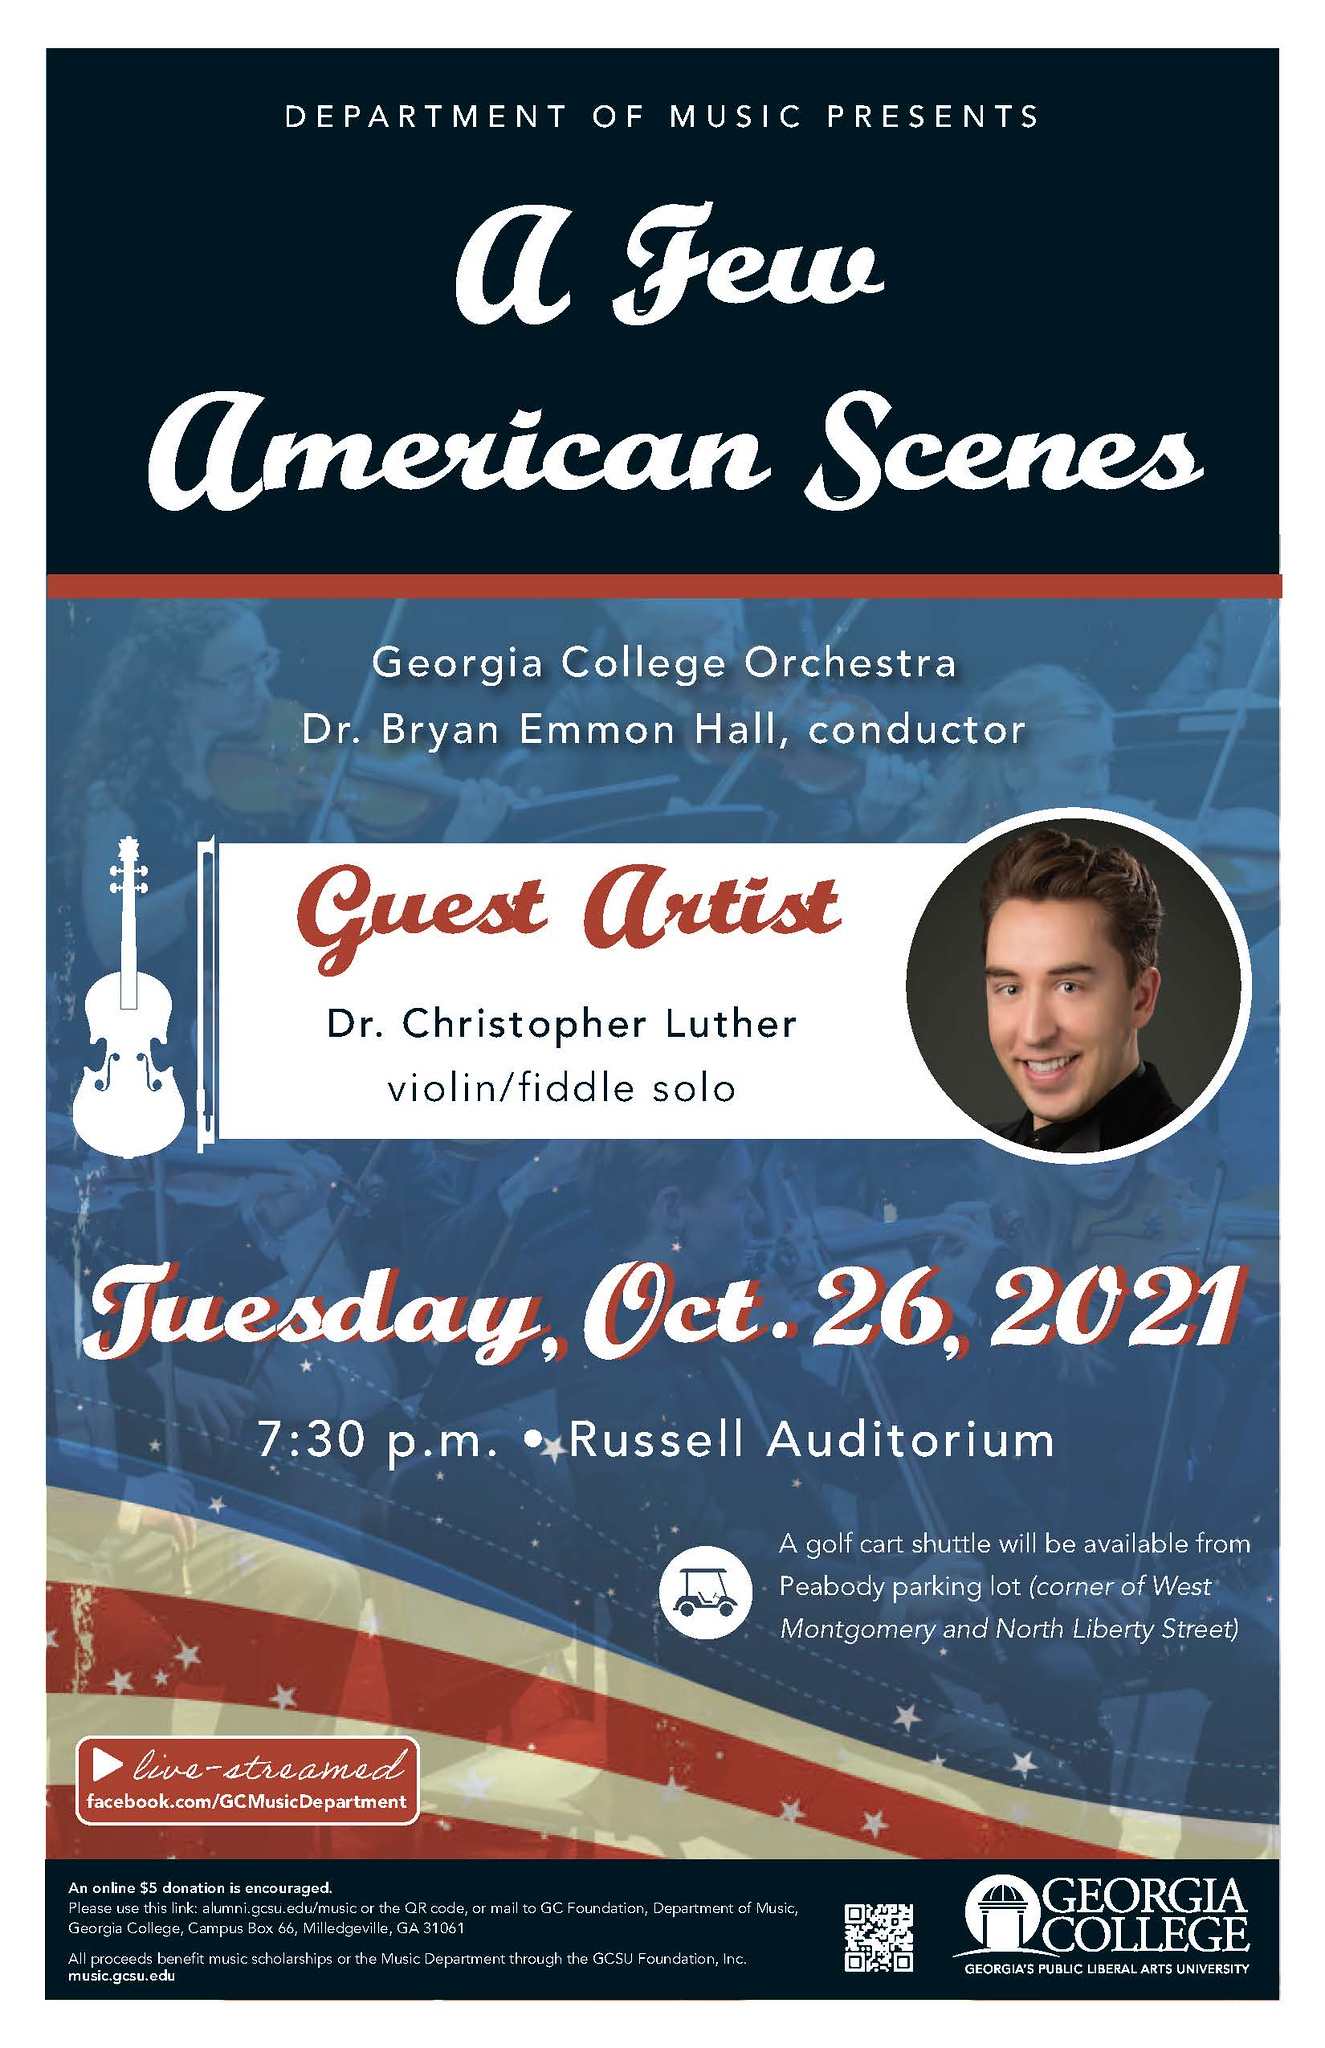 Please join us on Oct. 26 for this concert.